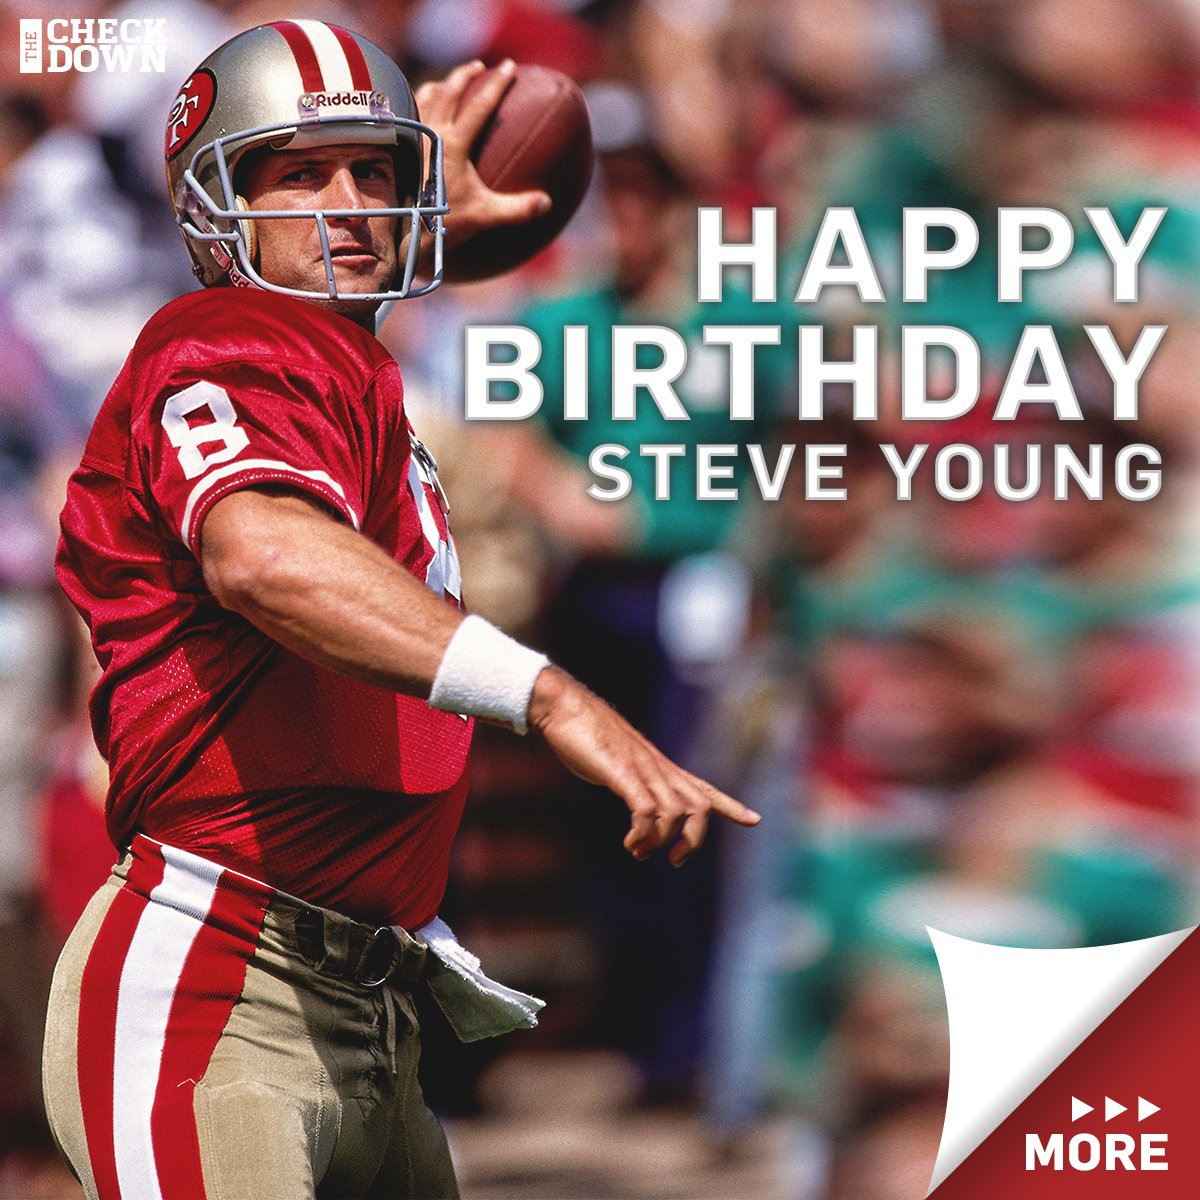 Happy birthday, Steve Young!